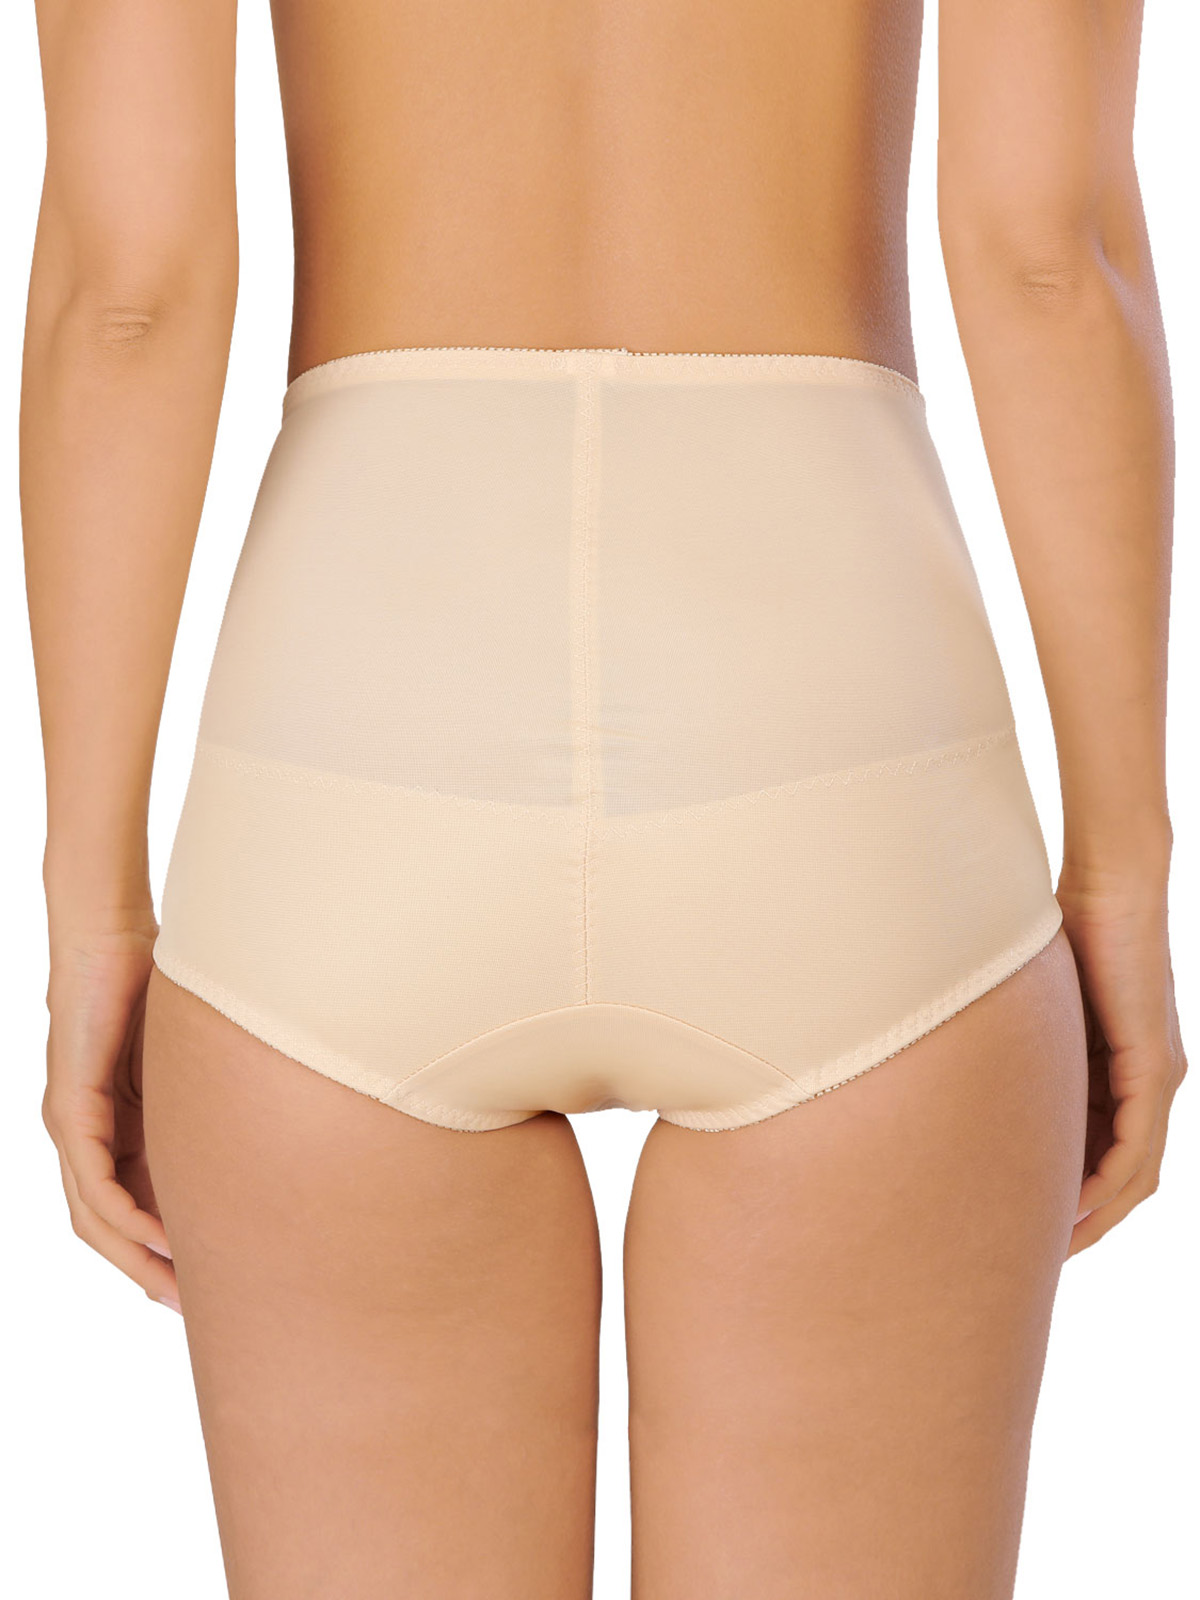 Naturana Panty Girdle 0319